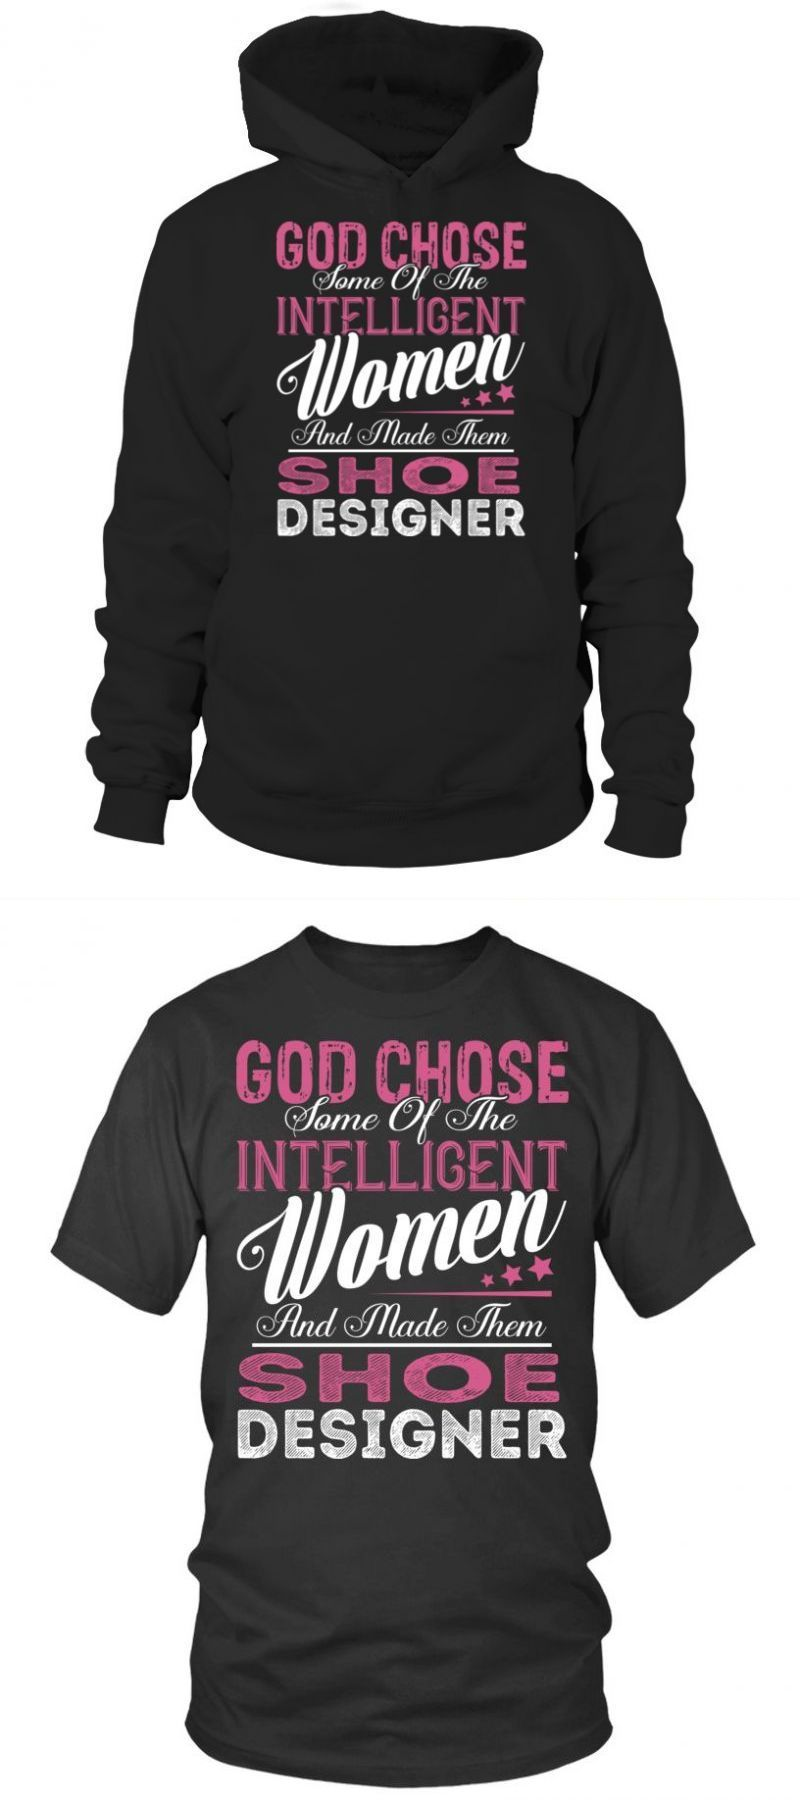 Italian Job T Shirt Shoe Designer God Chose T Shirt Graphic Designer Job Description Italian Job Shirt Shoe Designer God Chose T Shirt Graphic Descr